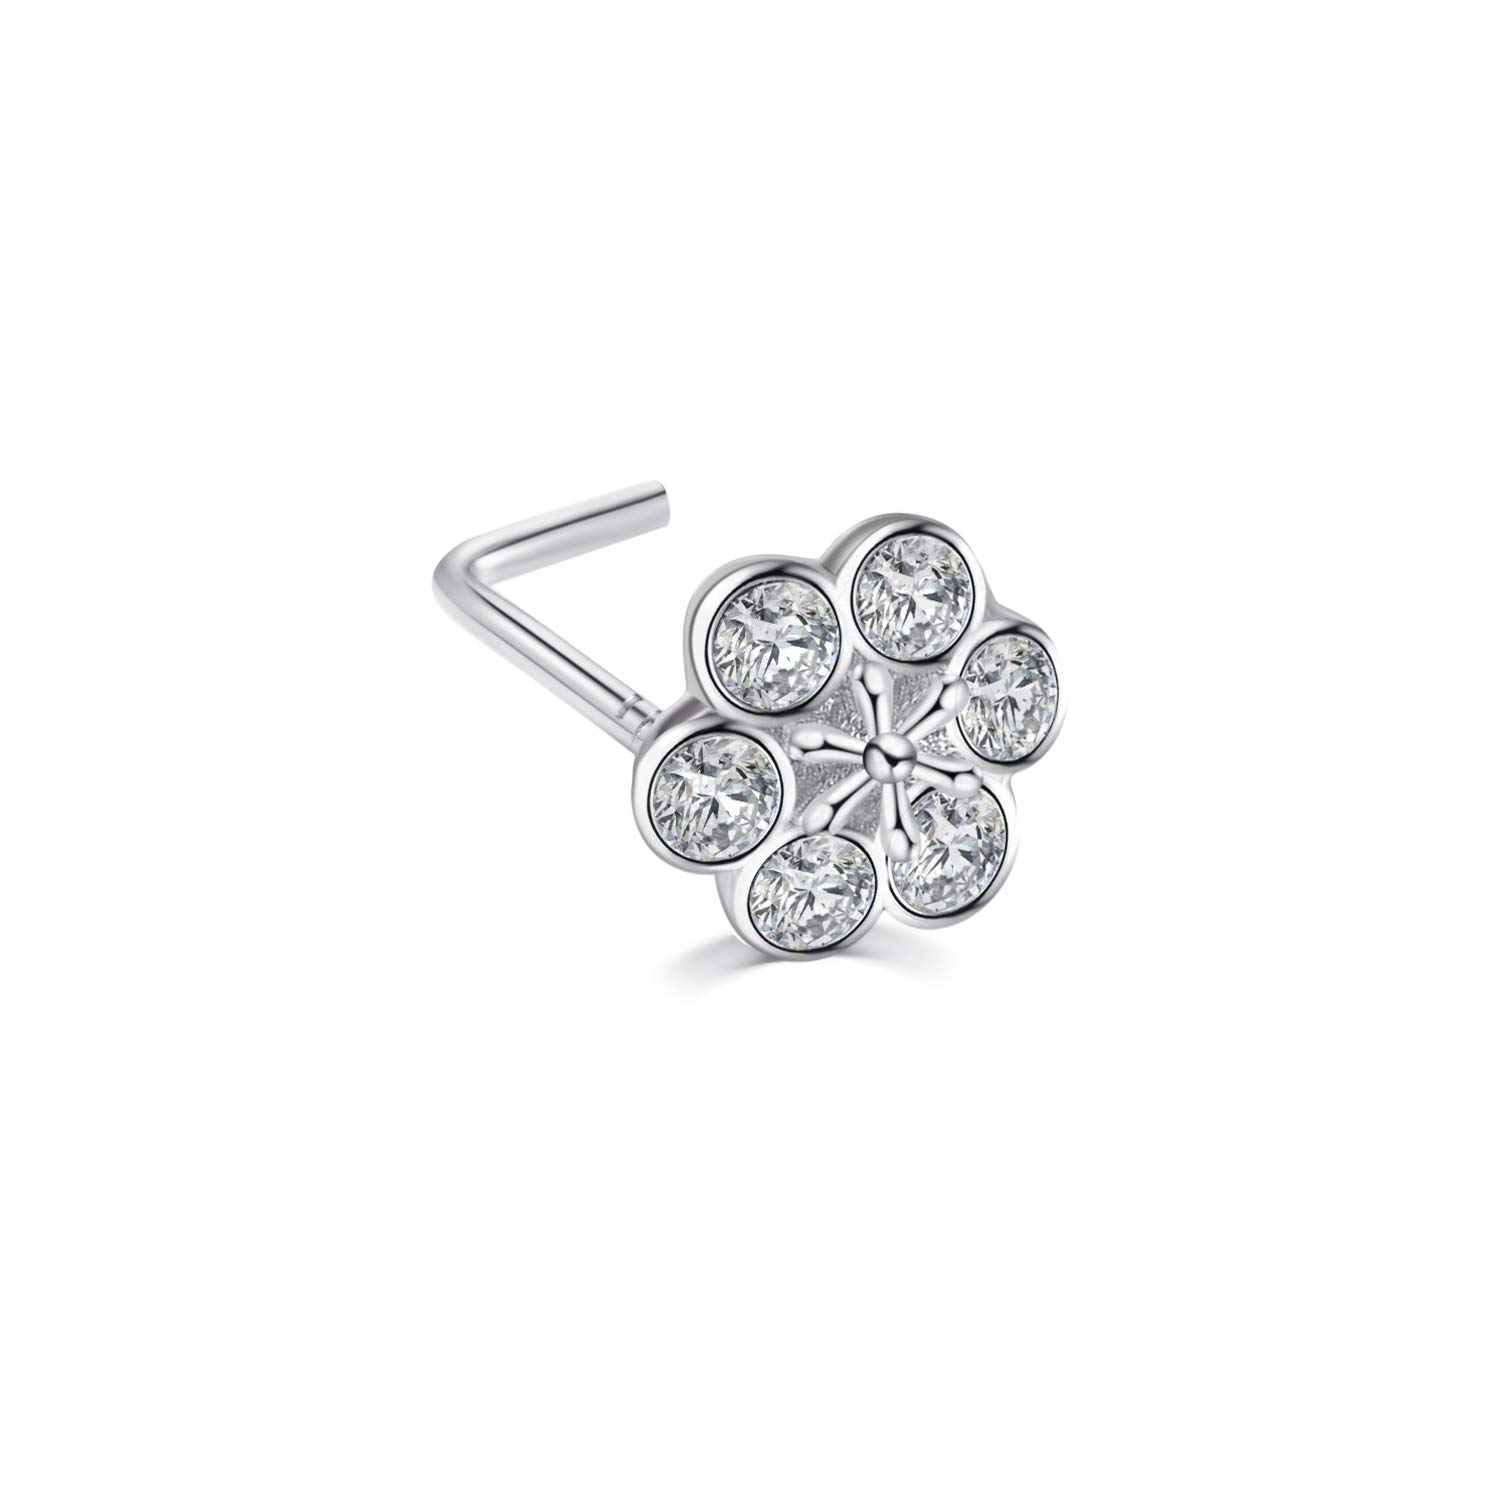 AOBOCO Sterling Silver 20G Flower Nose Ring L Shape Face Nose Stud with Swarovski Crystal by AOBOCO